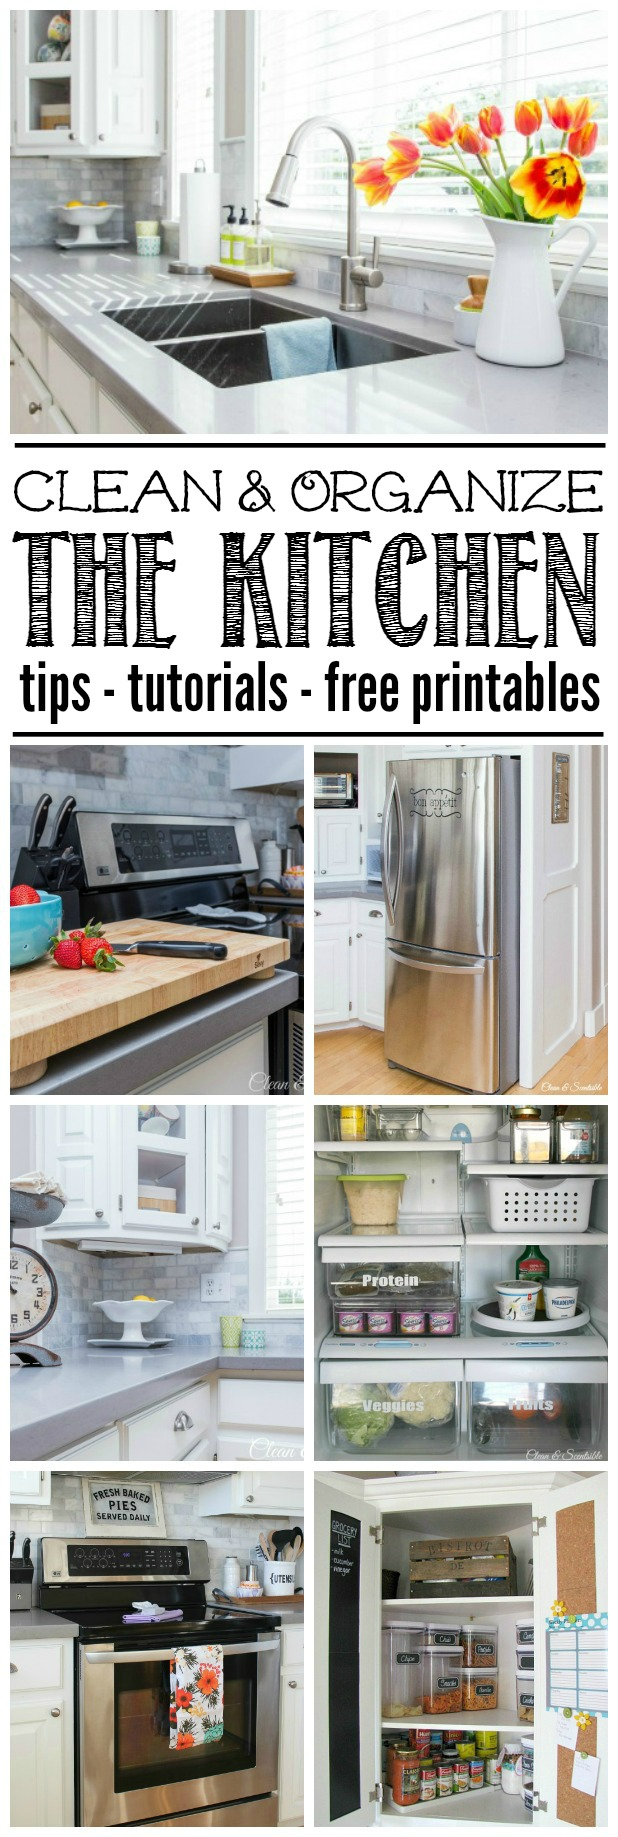 How to clean and organize the kitchen {The February Household Organization Diet} - Everything you need to get your kitchen decluttered, cleaned, and organized! Tips, tutorials, and free printables included.